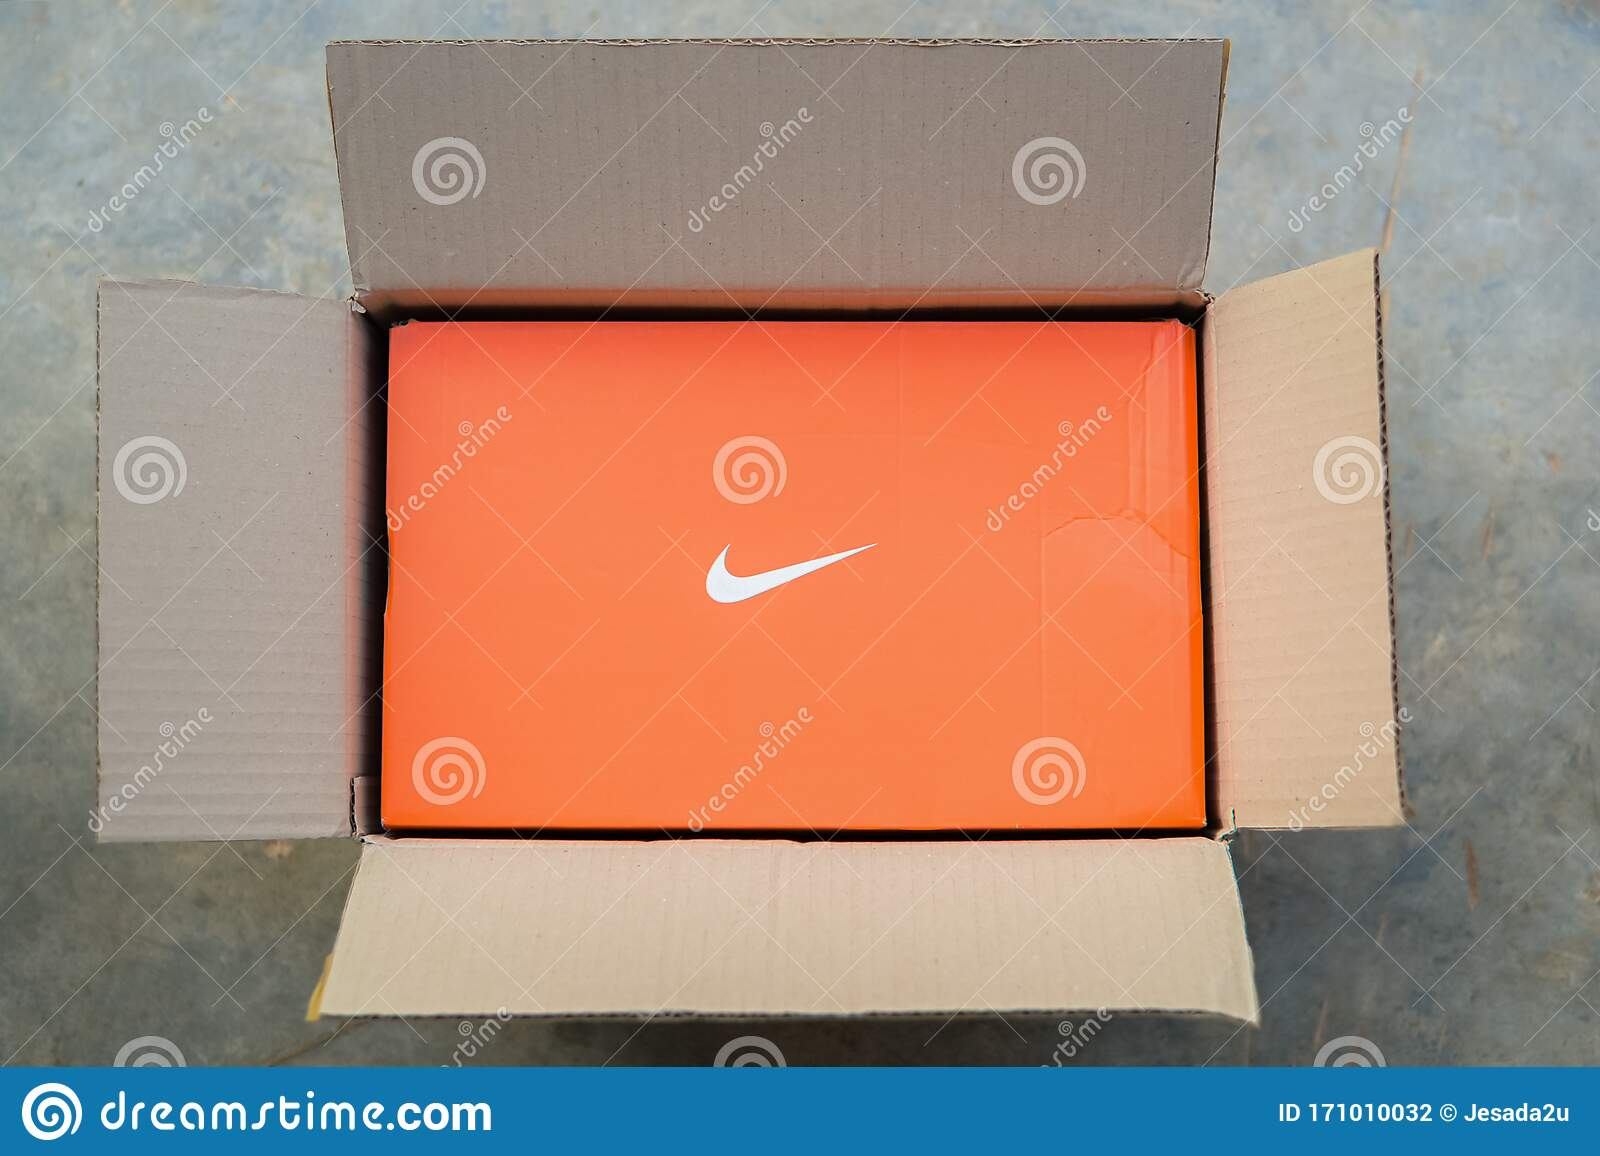 sacudir barbería Tranquilidad  Khon Kaen, THAILAND - January 2020 : Nike Shoes Box In A Post Box Online  Ordering And Express Delivery To Home Editorial Photography - Image of  american, clothes: 171010032